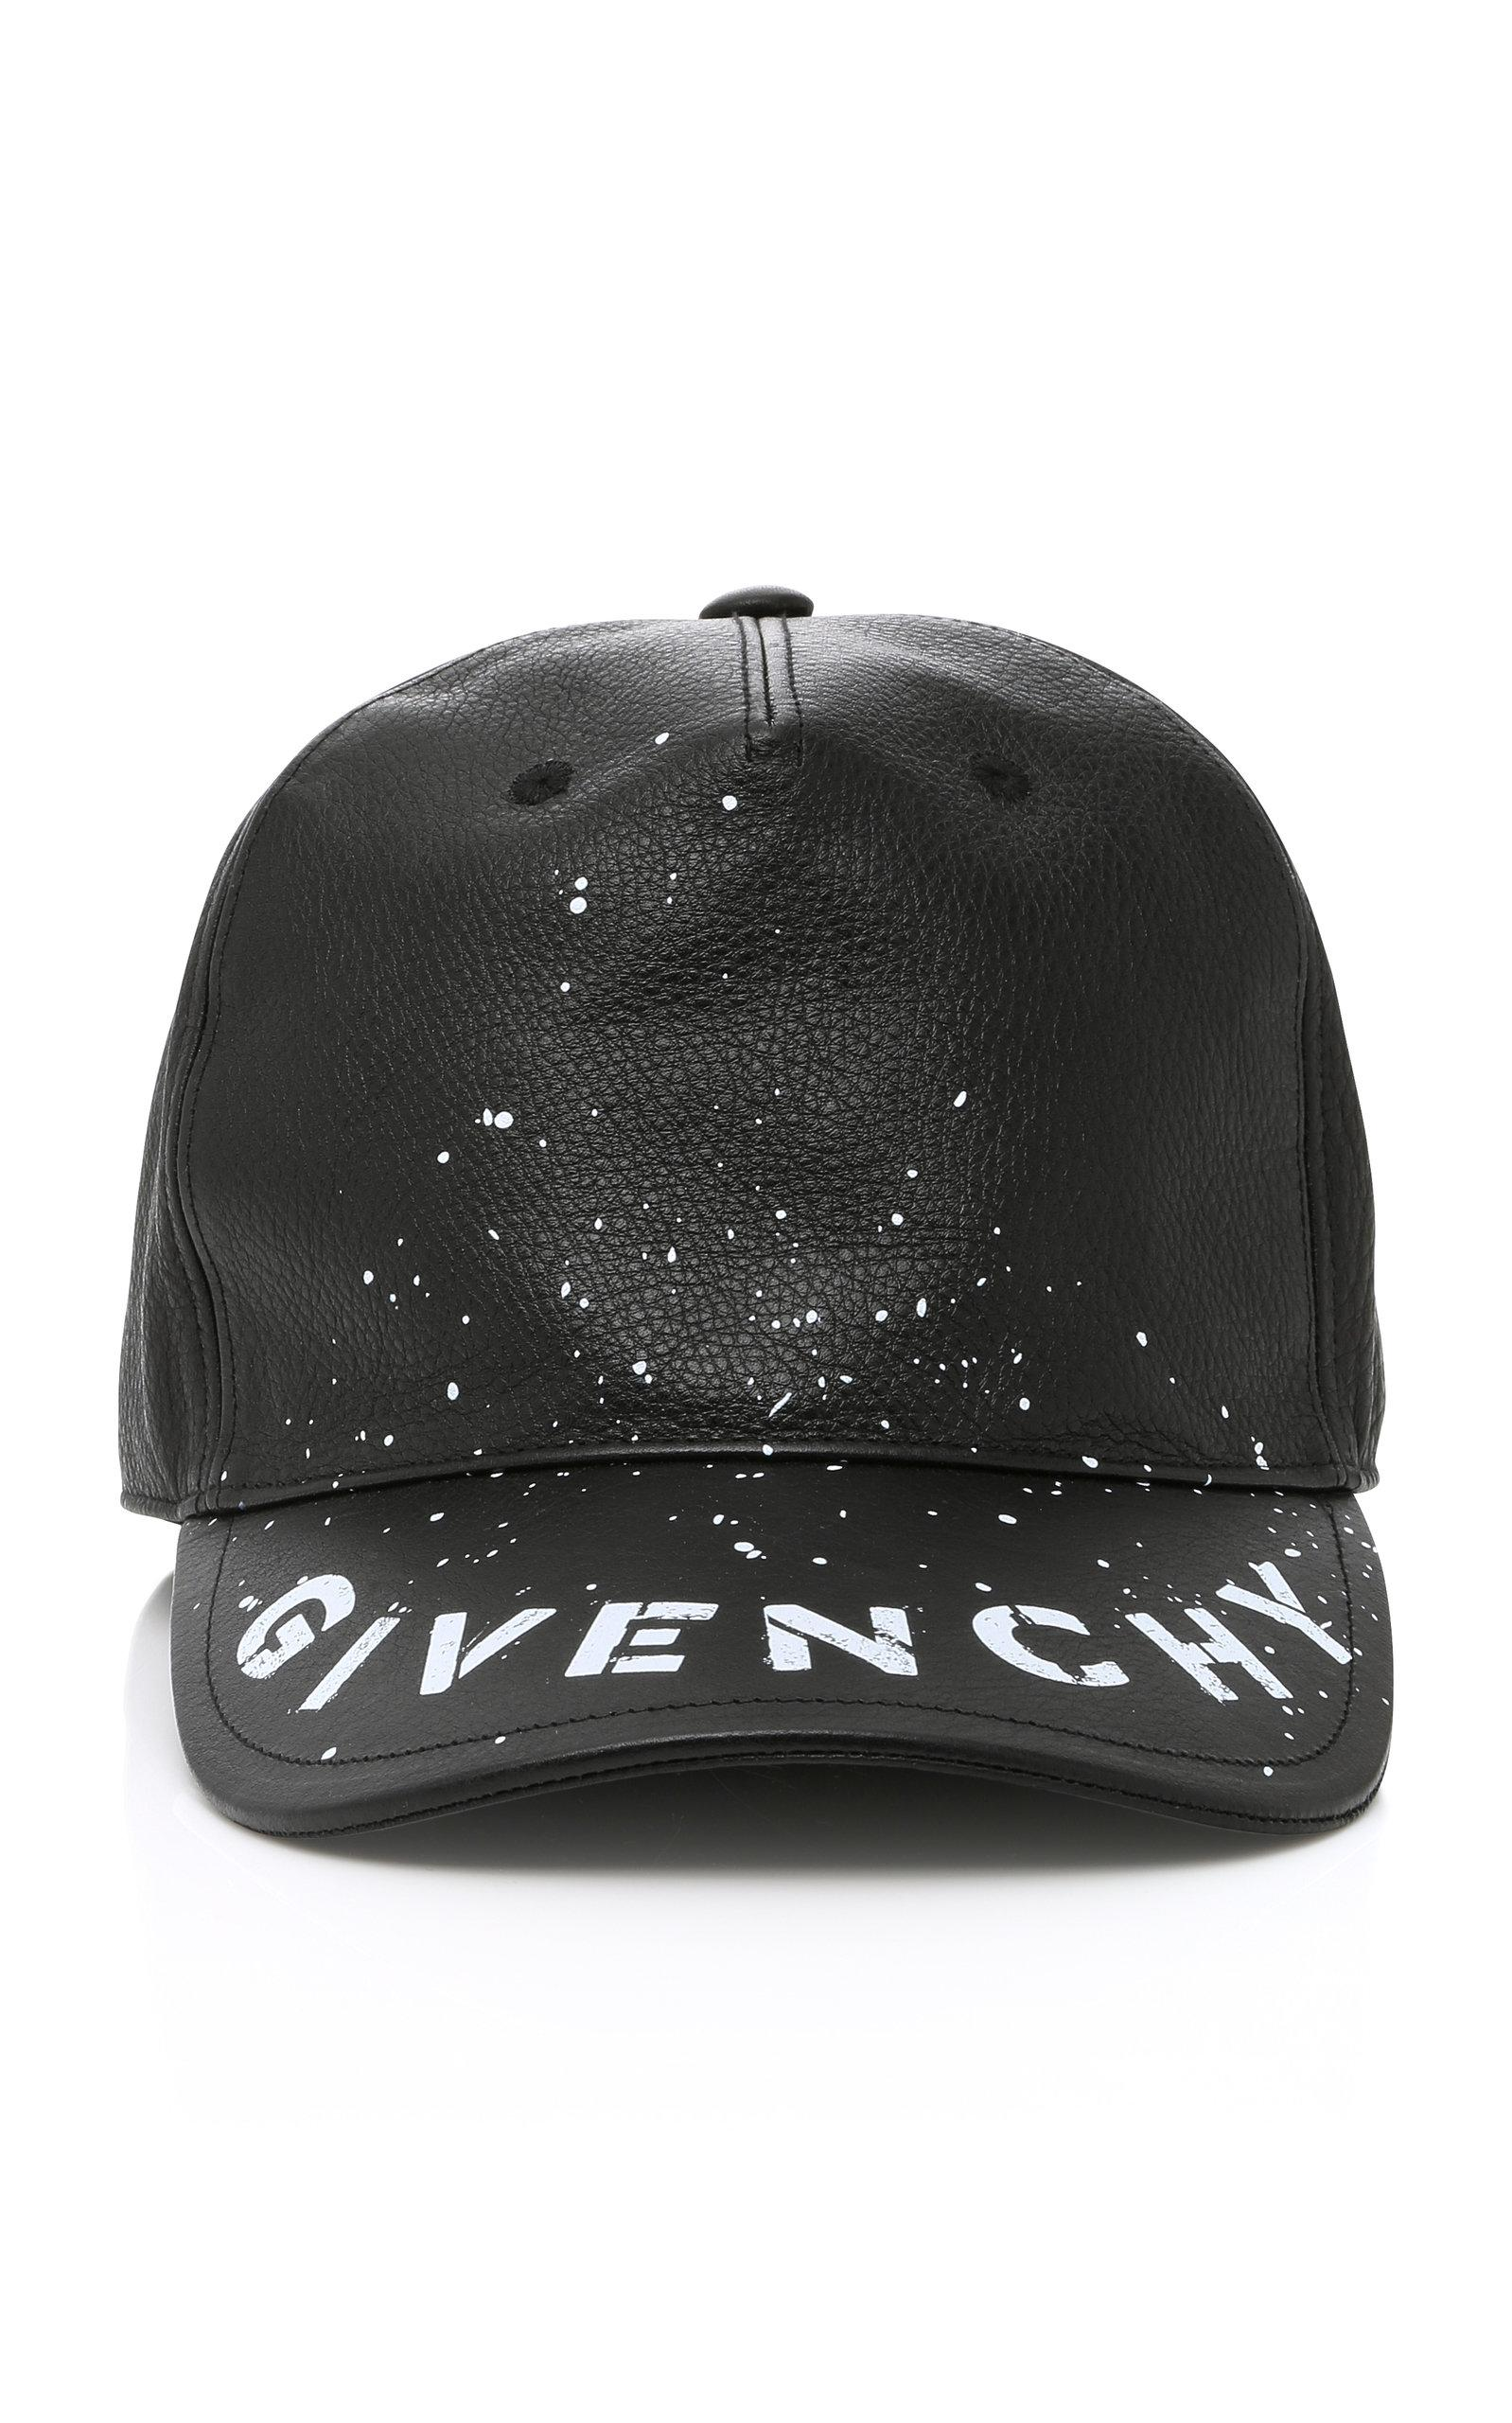 83656608c41 Lyst - Givenchy Graffiti Logo Hat in Black for Men - Save 74%